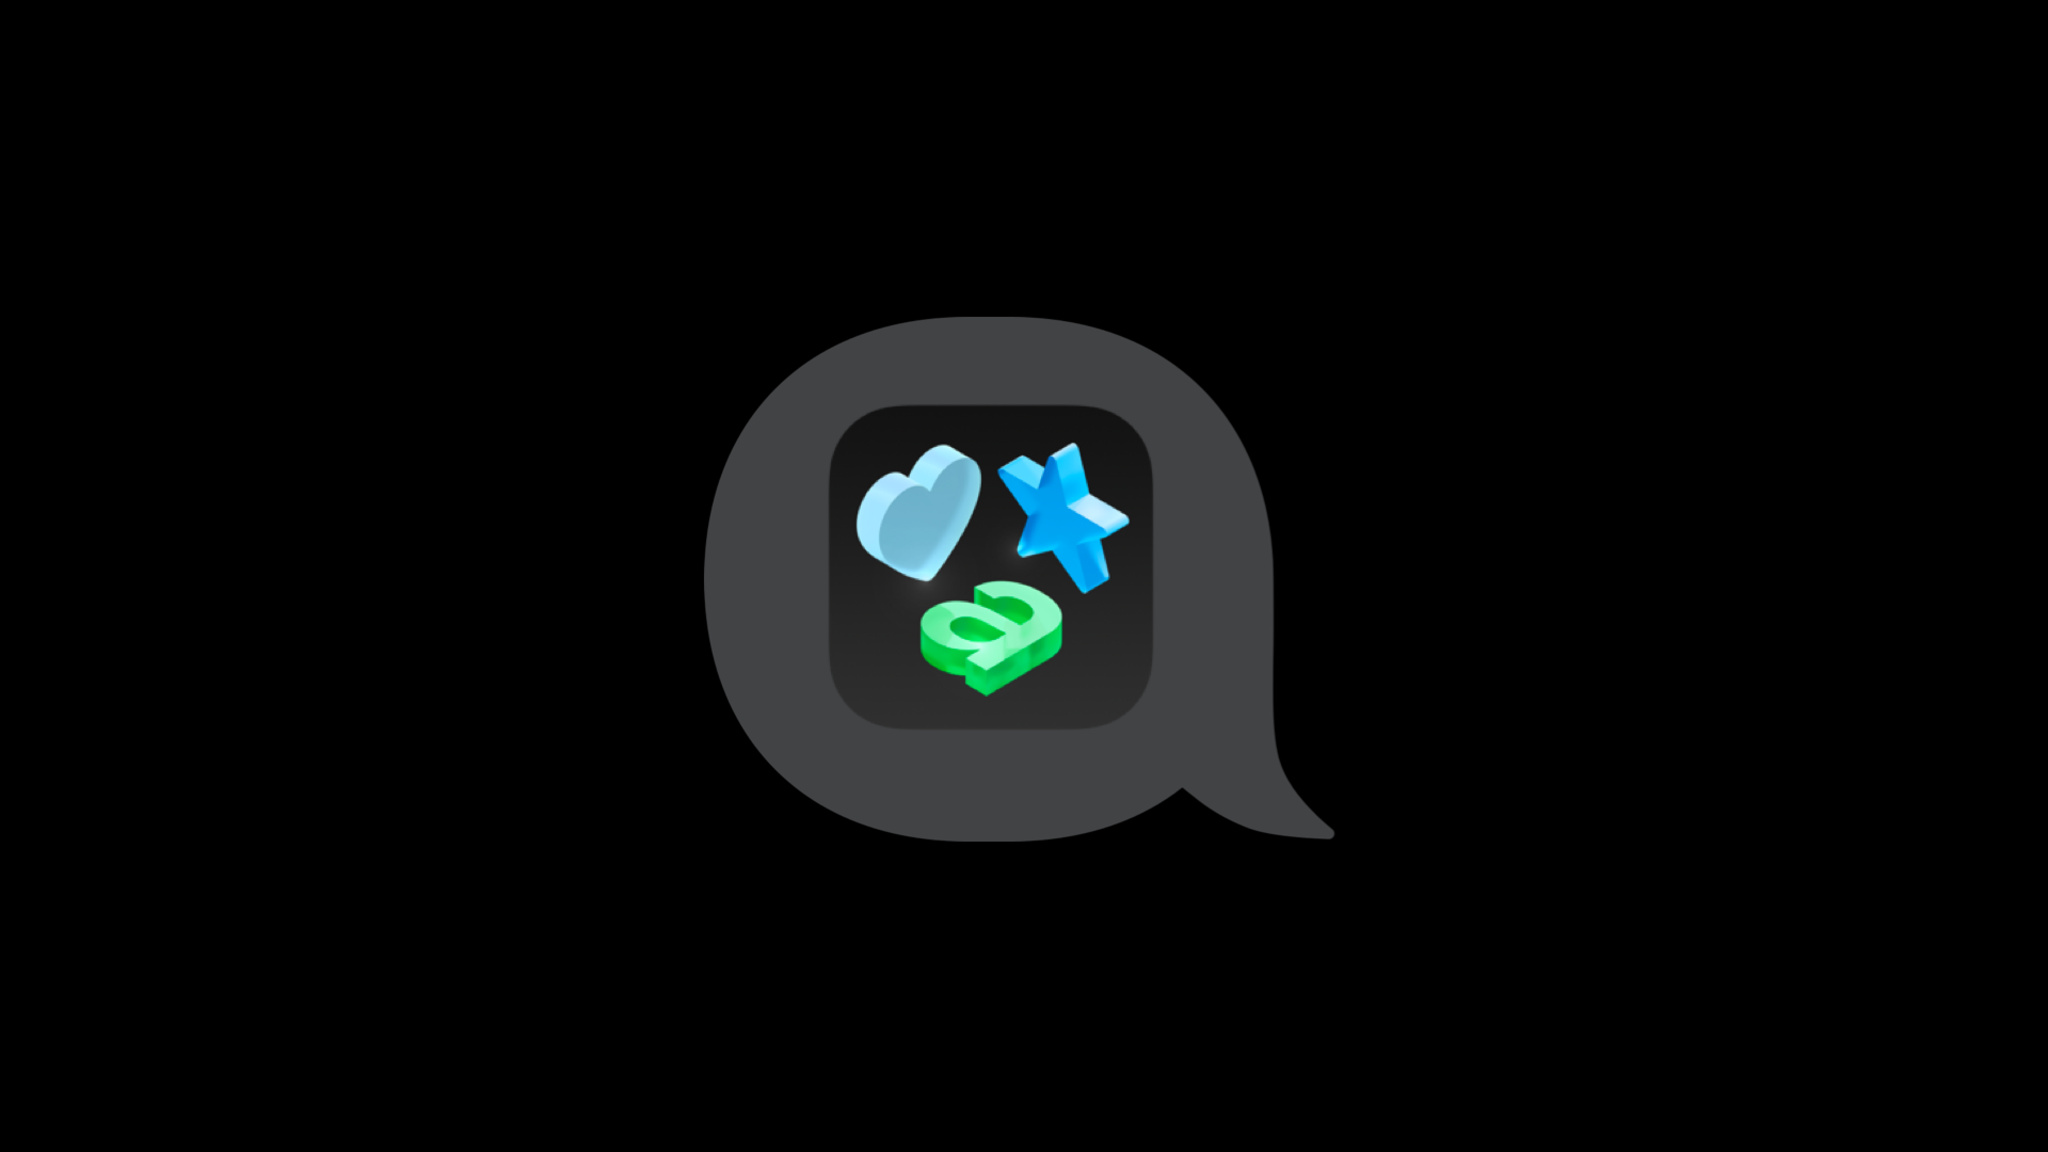 """A heart and start symbol, and a lowercase """"a"""" displayed on an app icon inside of a speech bubble."""